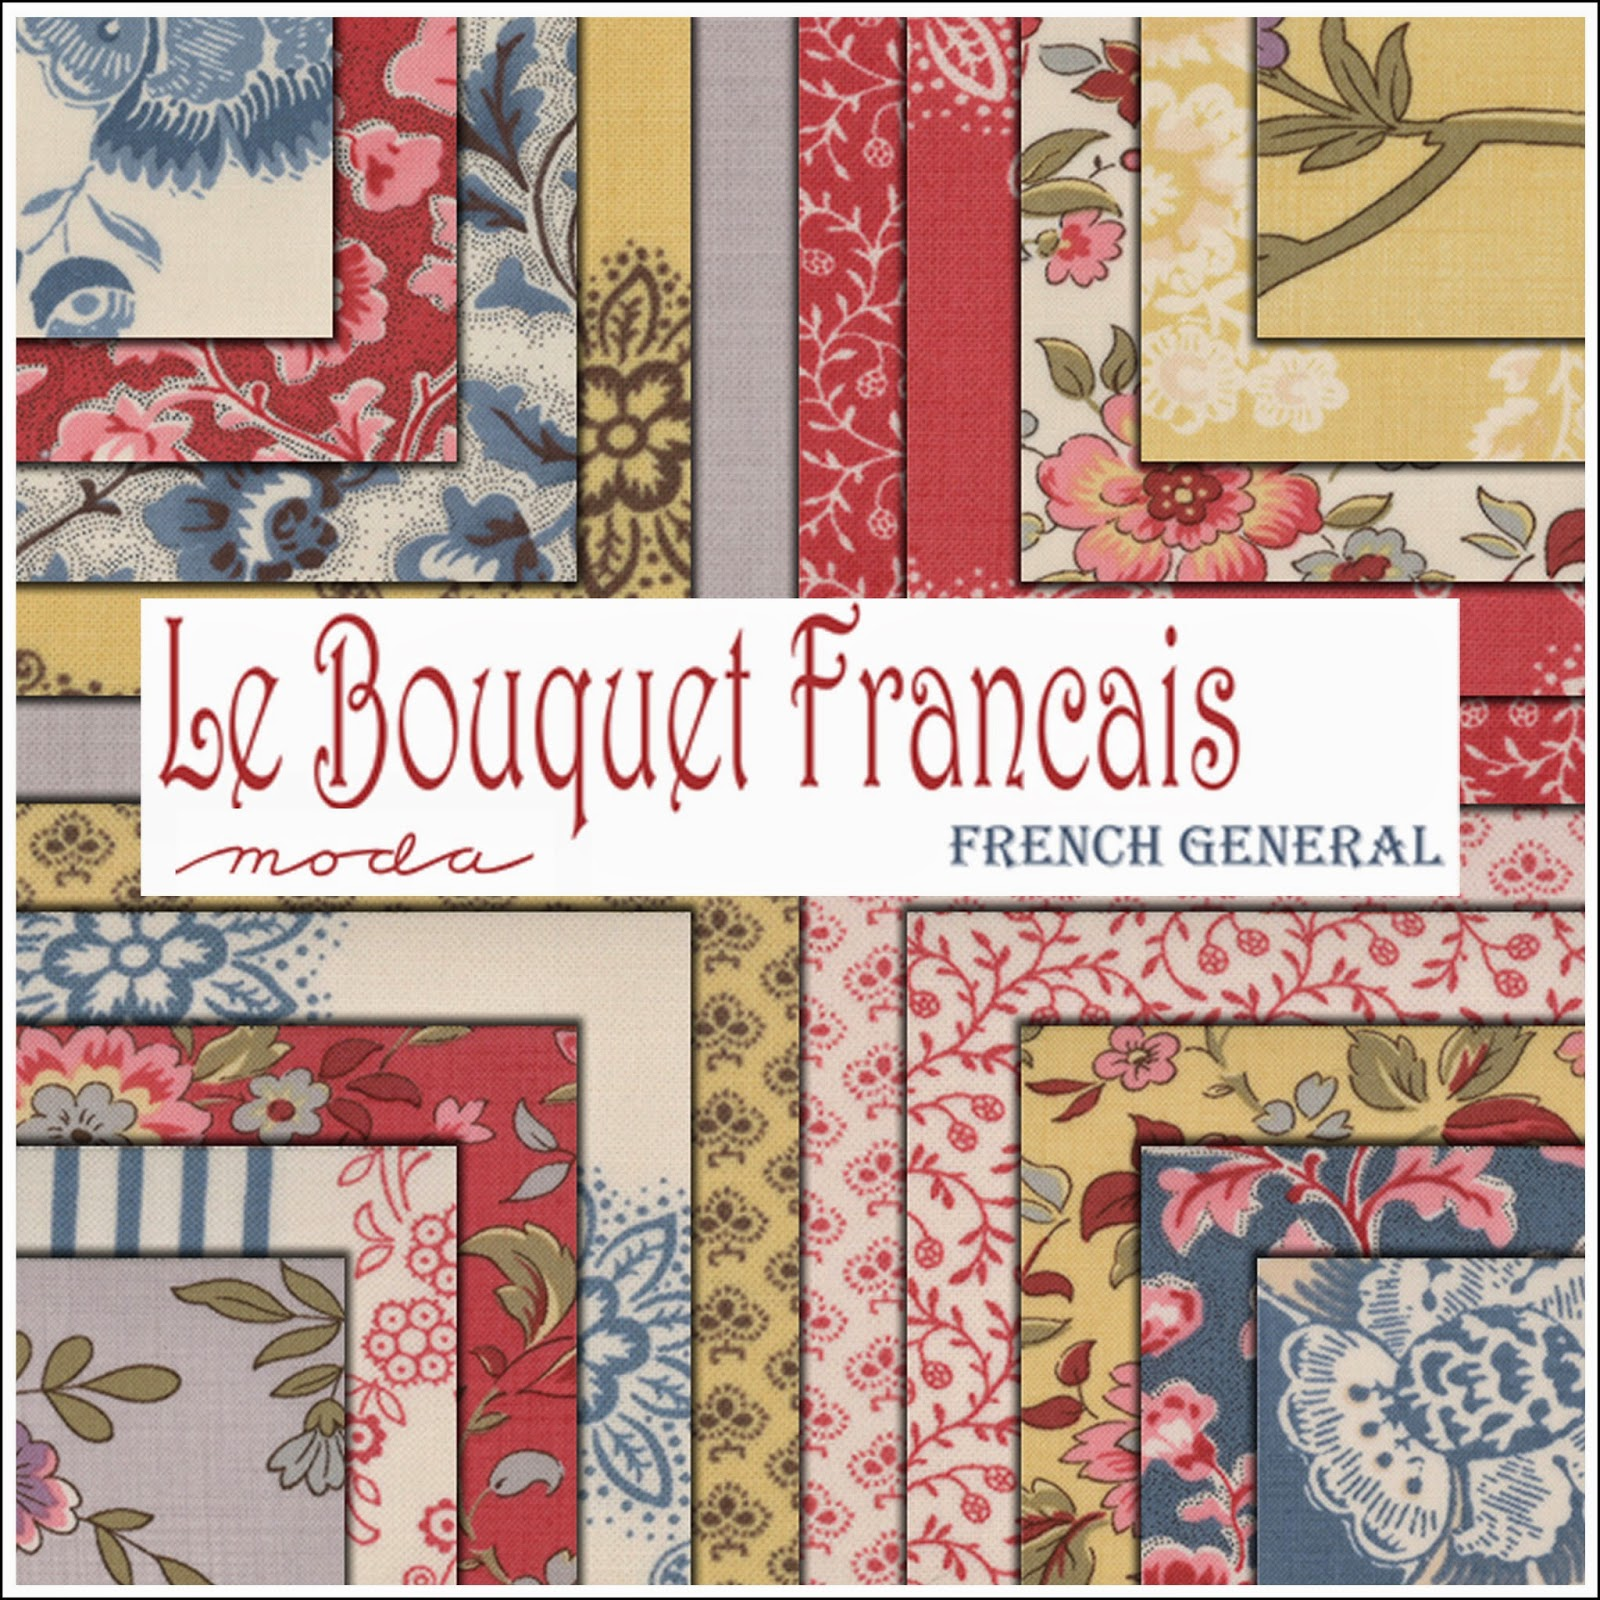 Moda LE BOUQUET FRANCAIS Quilt Fabric by French General